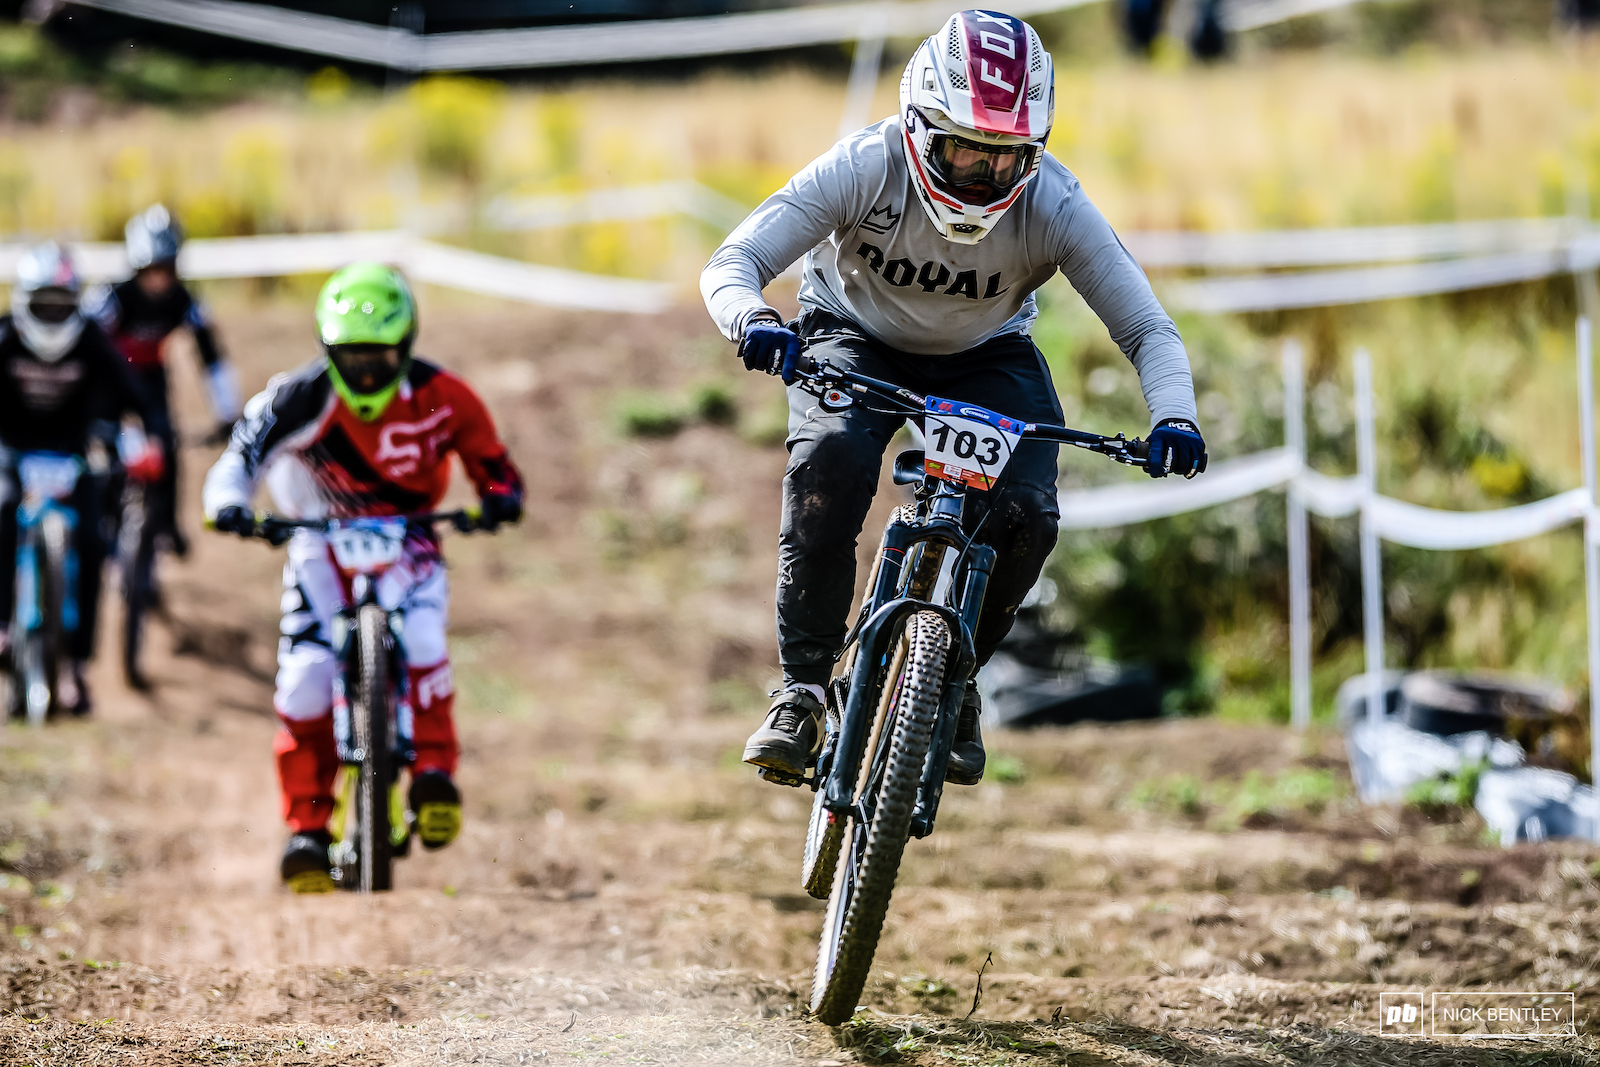 Daniel Biggs on the gas through the whoops to take the win in the 17-18 men s B Final.